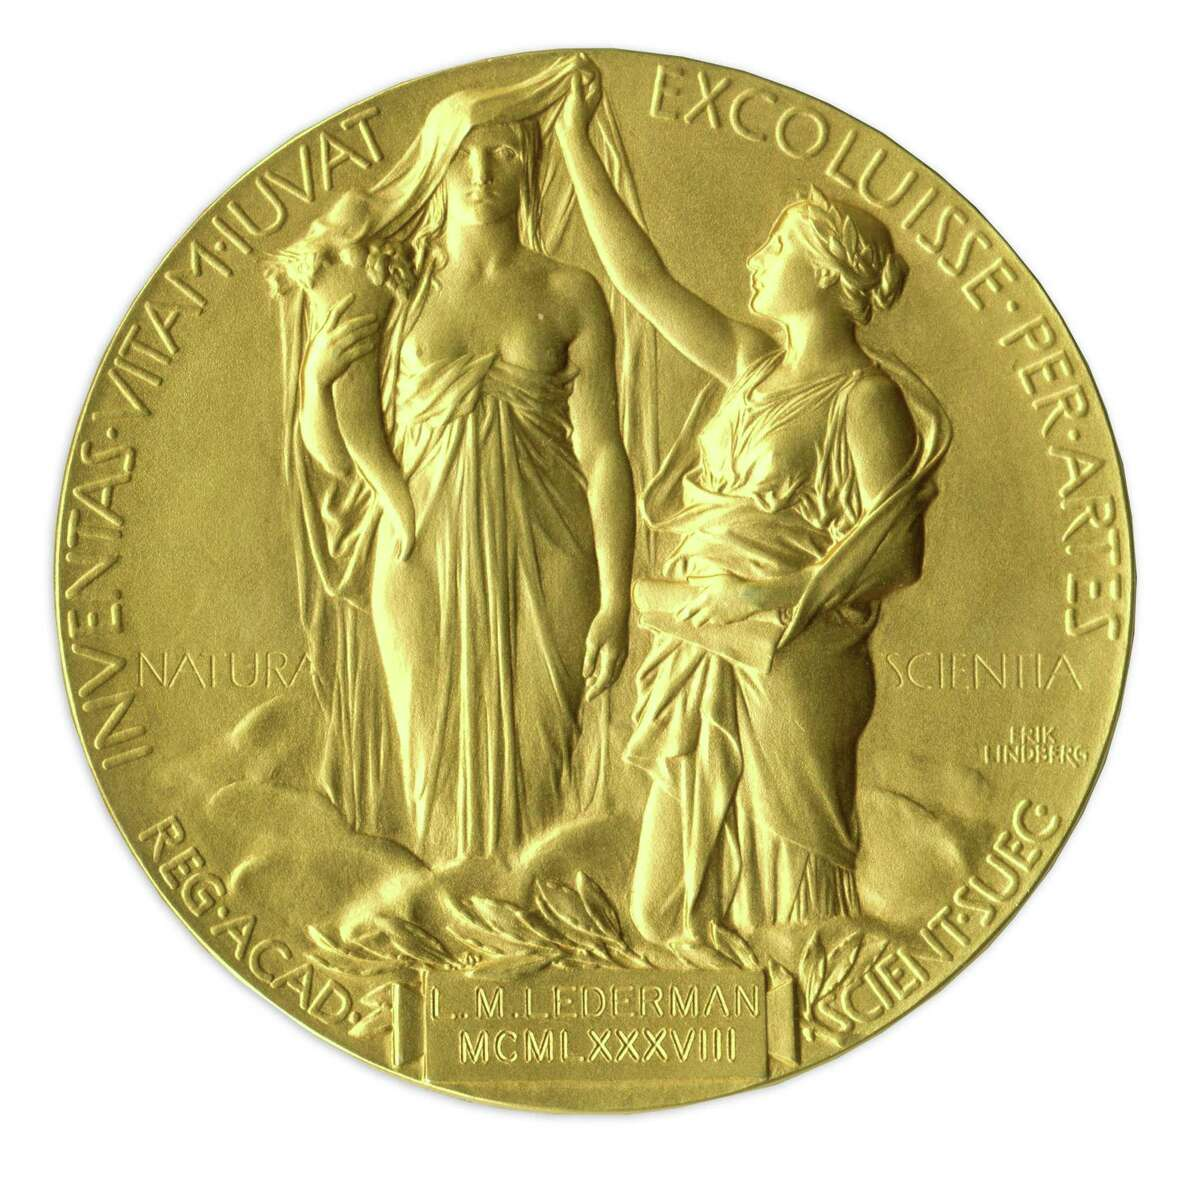 This undated image provided by Nate D. Sanders Auctions, shows the reverse of the 1988 Nobel Prize in Physics awarded to Dr. Leon Lederman. The award put up for auction by the retired experimental physicist has sold for $765,002 USD. The online auction went into overtime Thursday, May 28, 2015, until a final bid went unchallenged for half an hour. Nate D. Sanders Auctions spokesman Sam Heller says the final amount is the fourth-highest ever paid among the 10 Nobel Prizes that have been sold at auction. The 92-year-old has said he decided to sell the prize because it has just been sitting on a shelf. (Amanda Hart, Nate D. Sanders Auctions via AP)